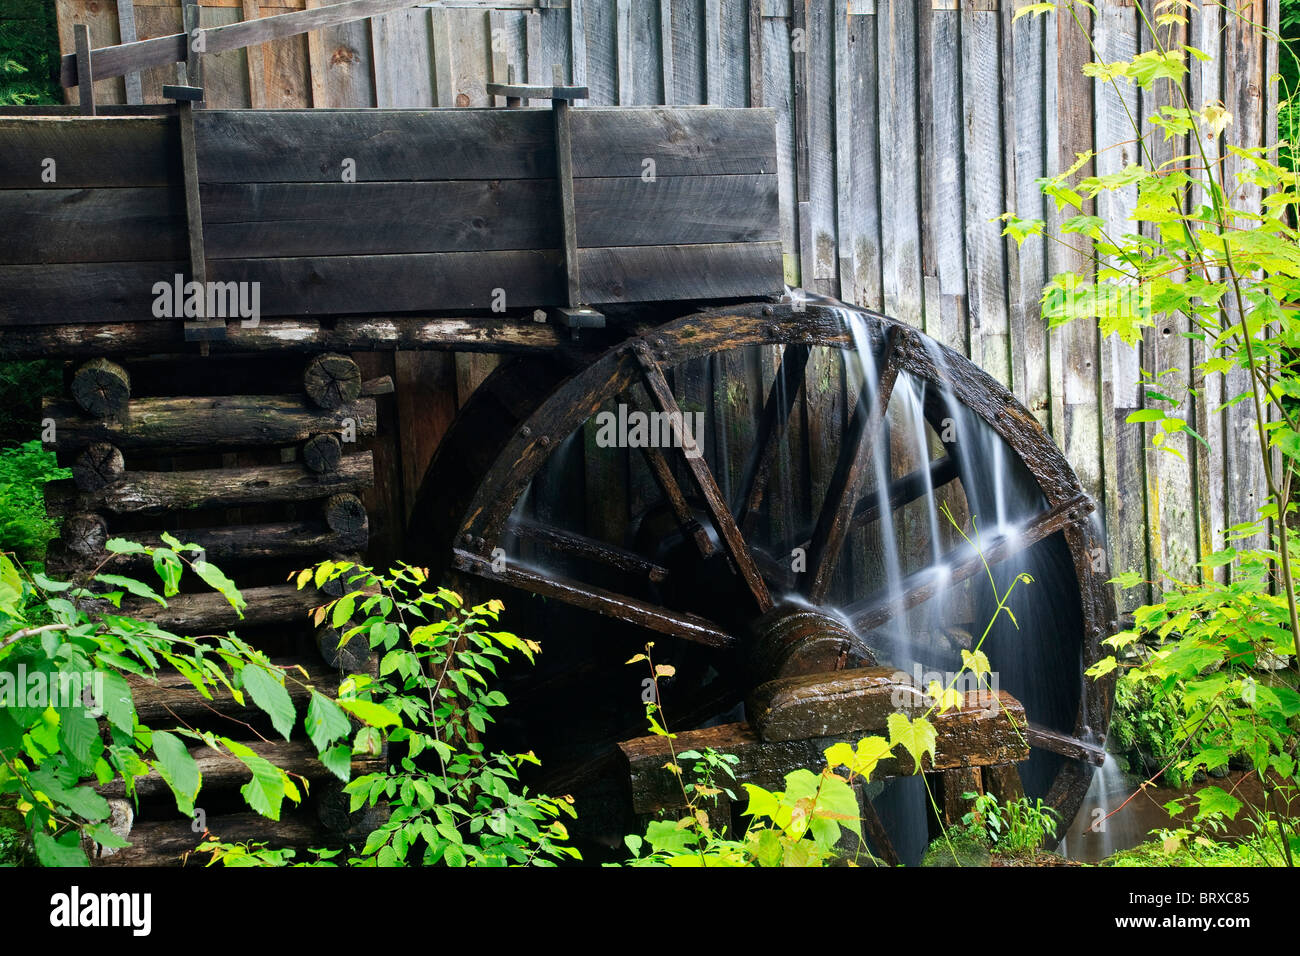 The John P Cable Grist Mills in the Great Smoky Mountains National Park - Stock Image